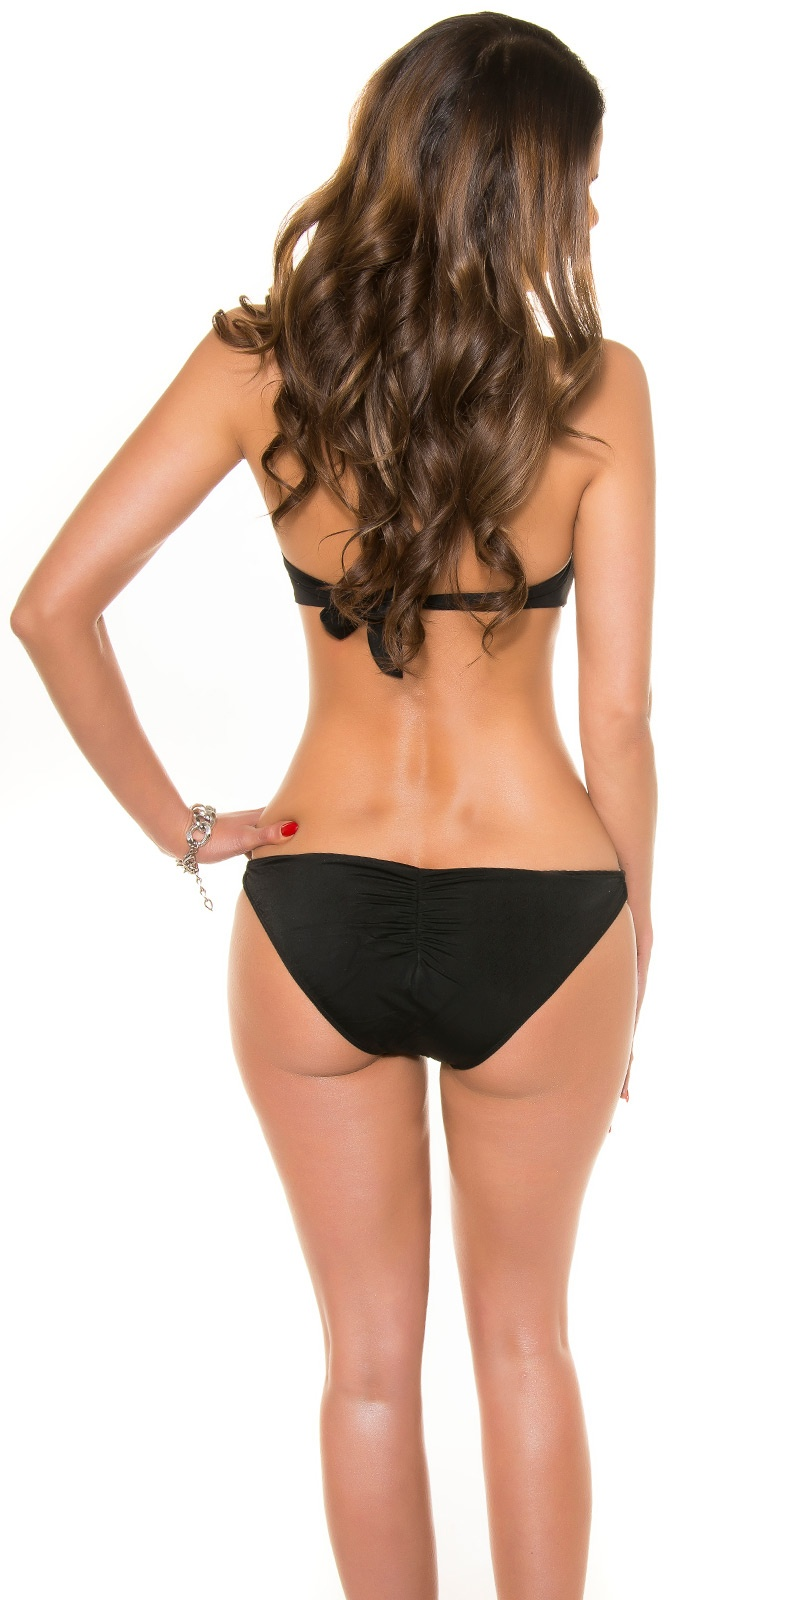 [Rb232] Czarne monokini kostium push up